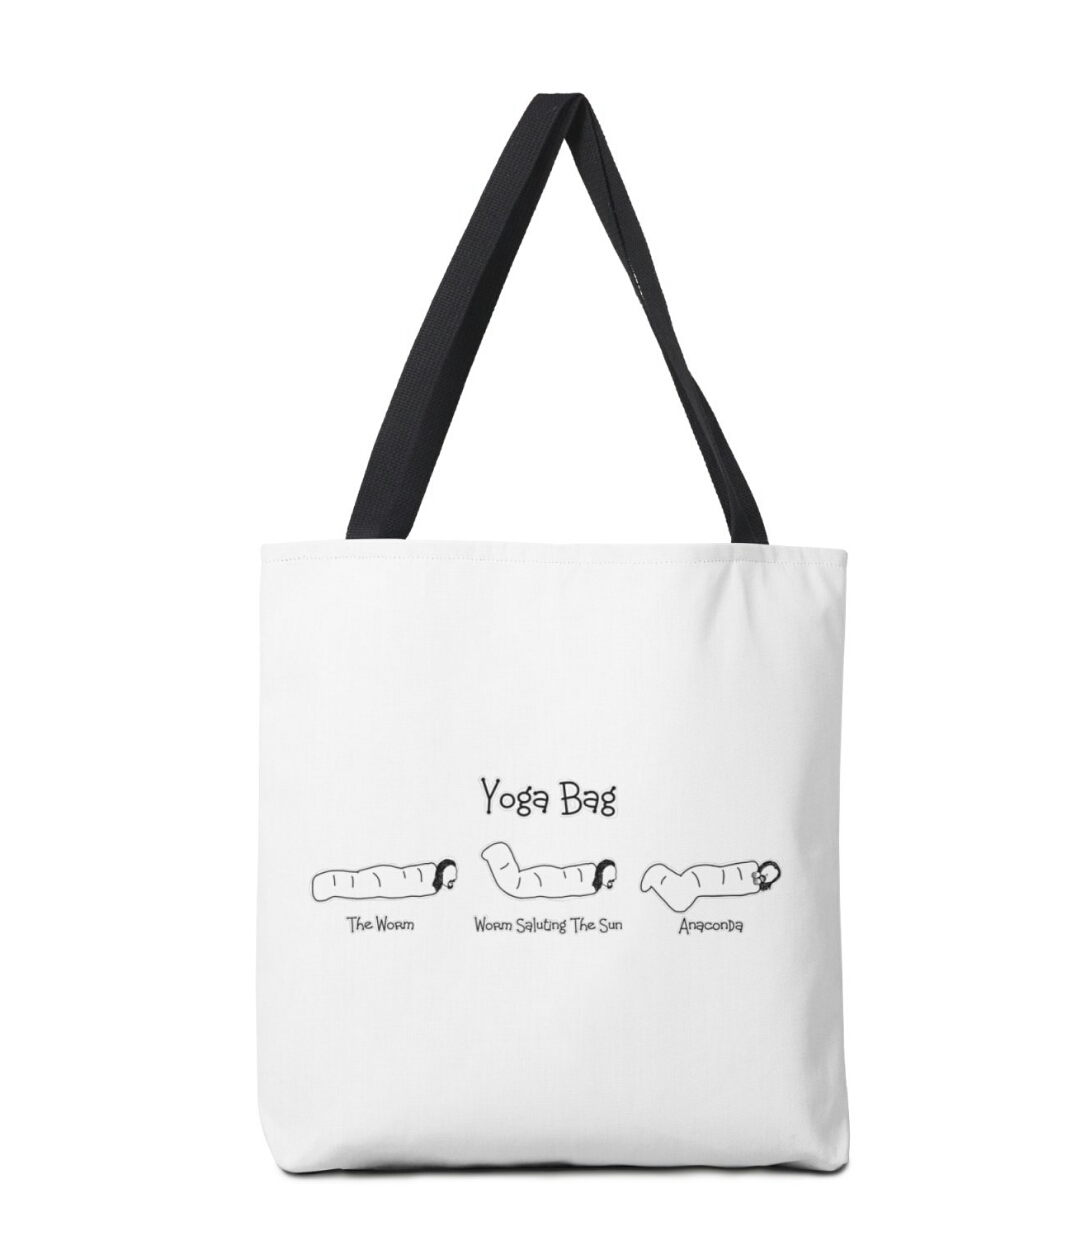 Black Books yoga tote bag